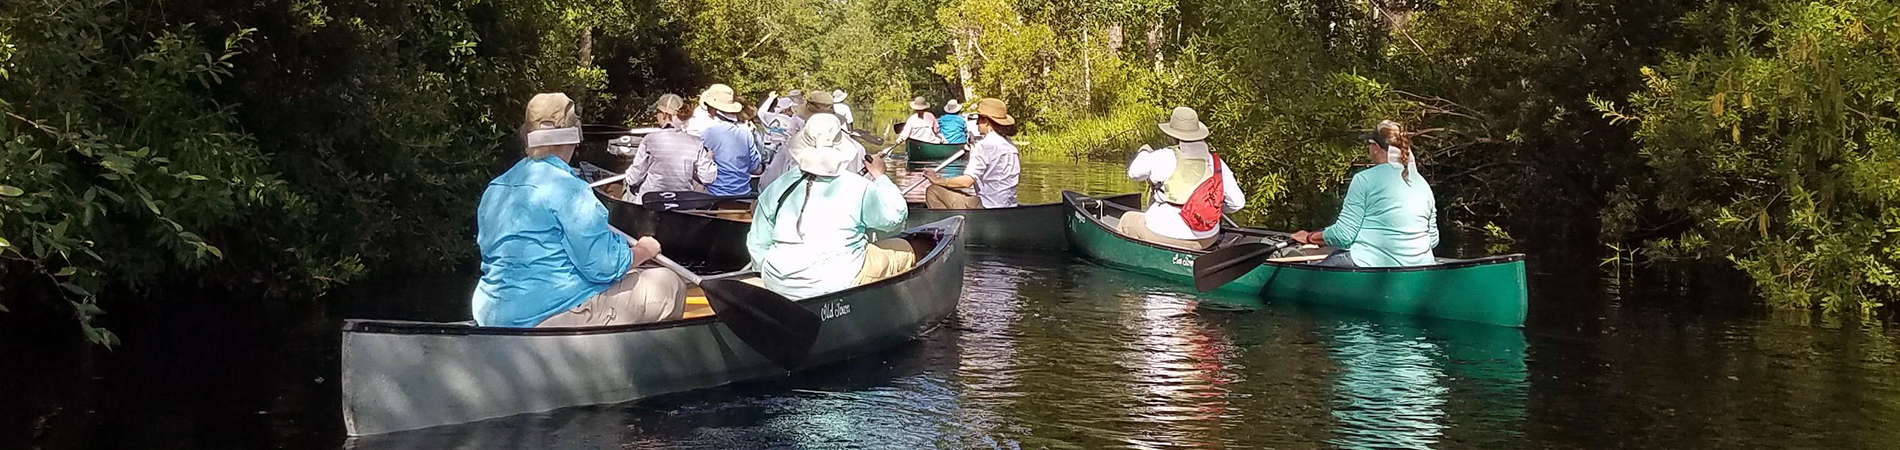 OWLS Teachers Canoeing